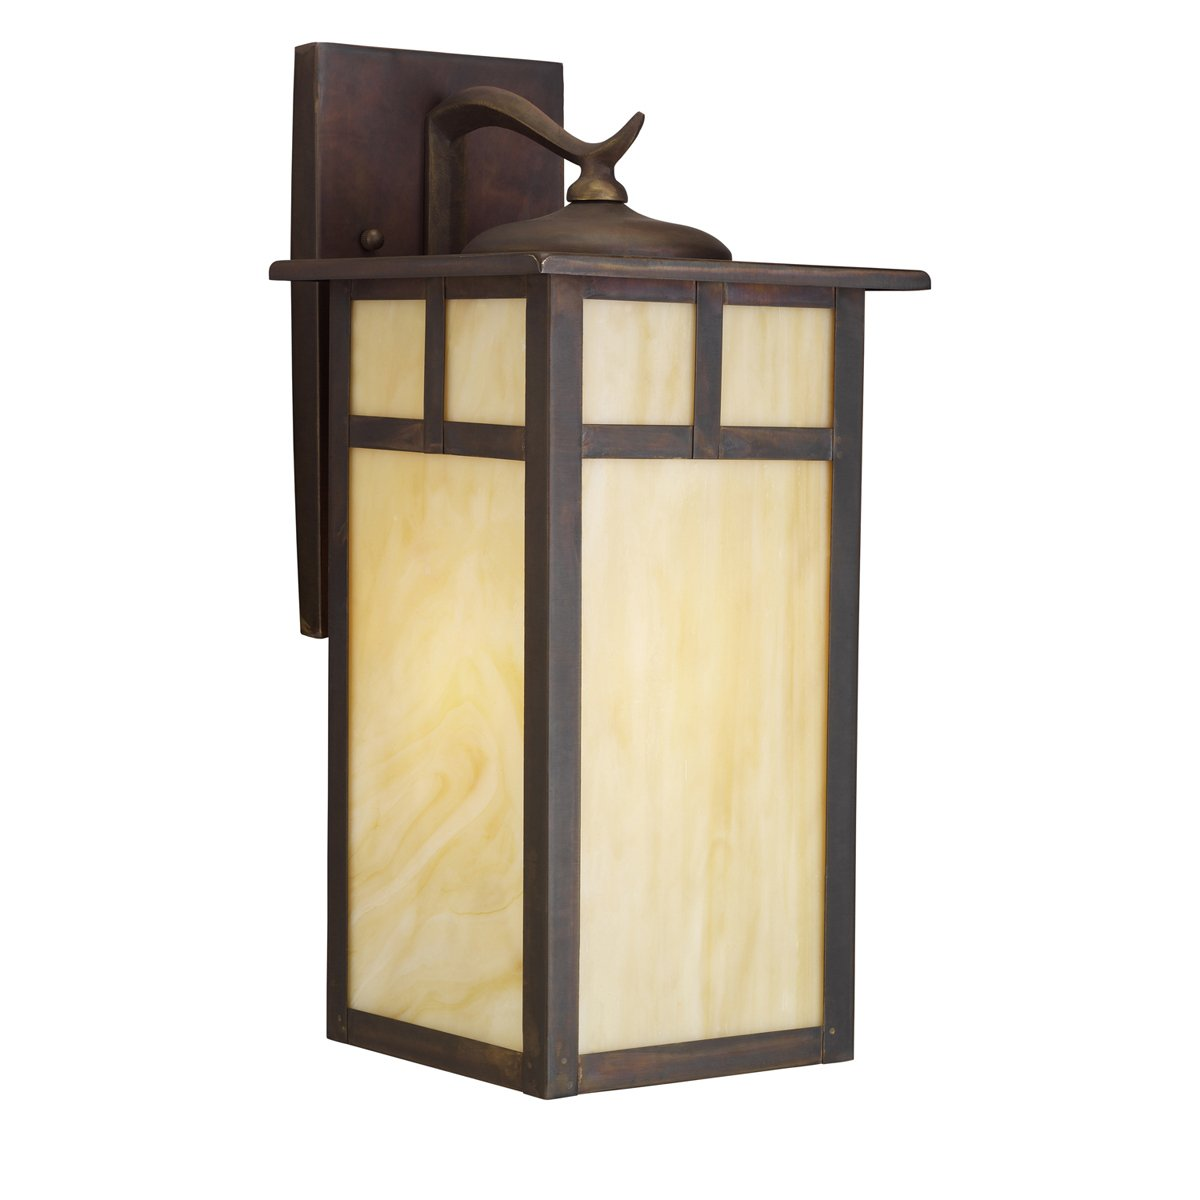 Kichler 9651cv alameda outdoor wall 1 light canyon view wall kichler 9651cv alameda outdoor wall 1 light canyon view wall porch lights amazon mozeypictures Choice Image